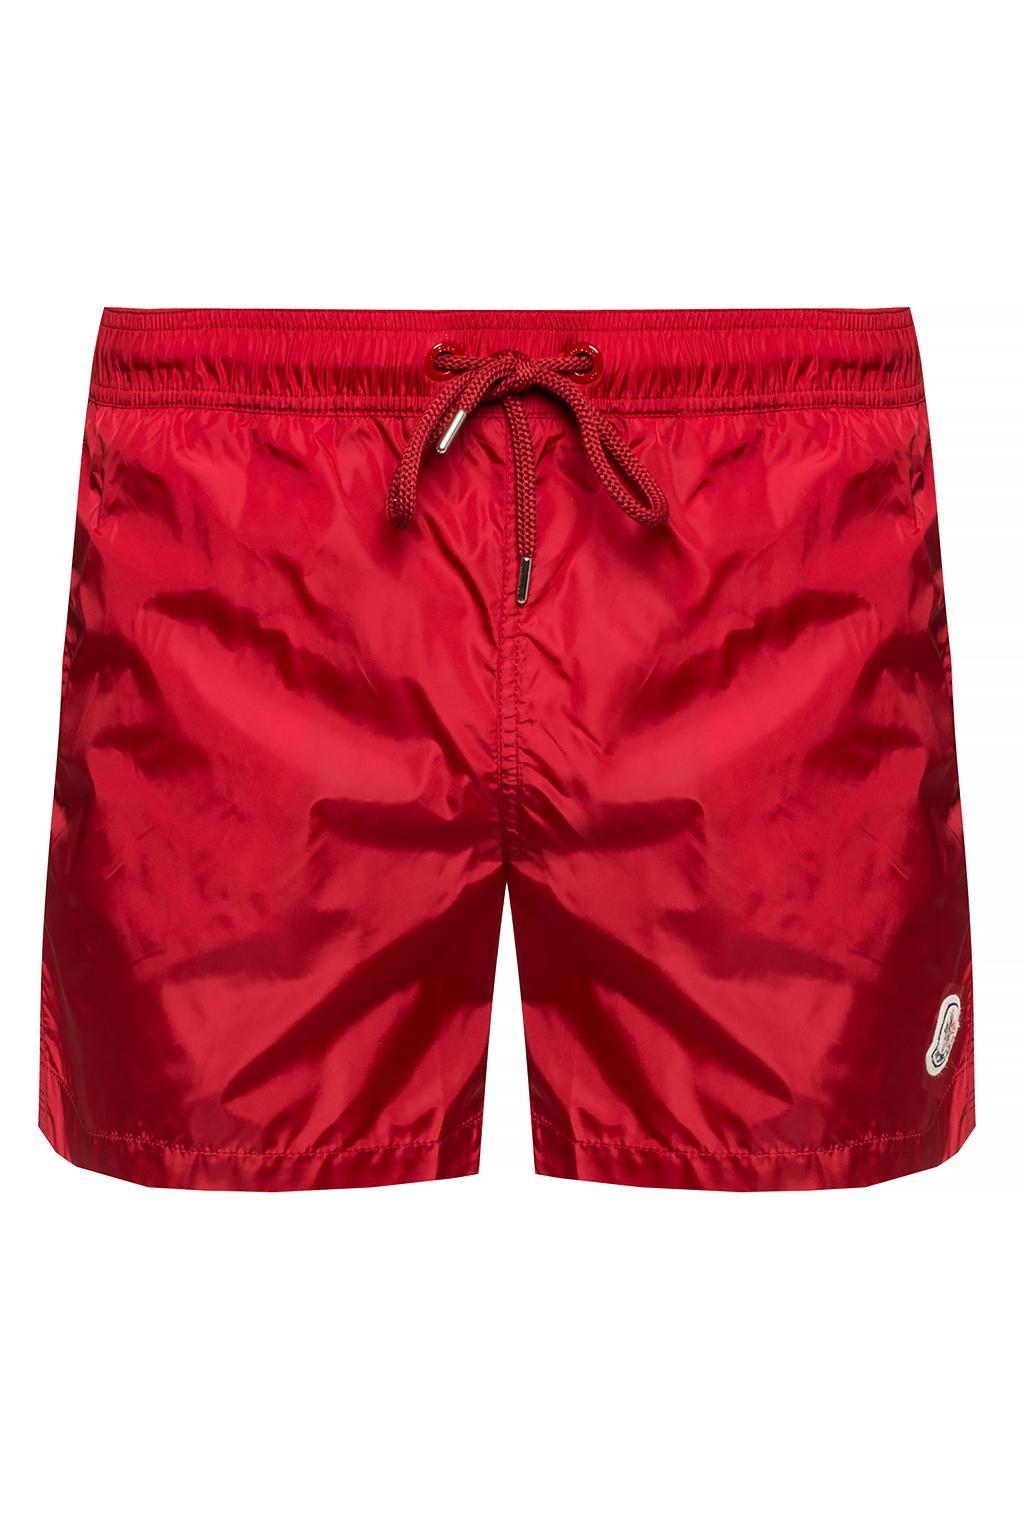 d4941a4fe3 Moncler Logo-patched Swim Shorts in Red for Men - Lyst